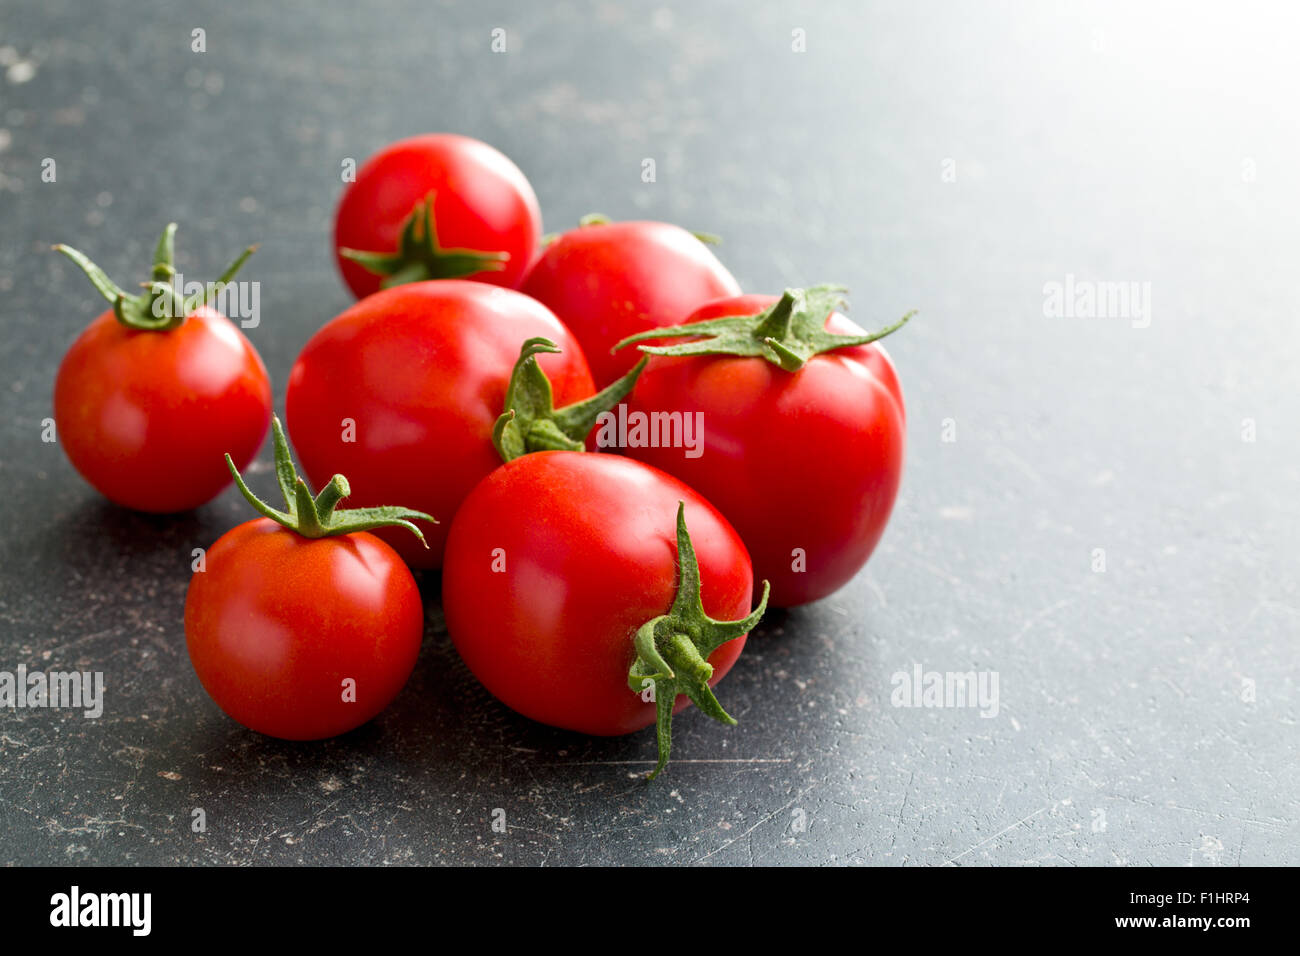 red tomatoes on kitchen table - Stock Image